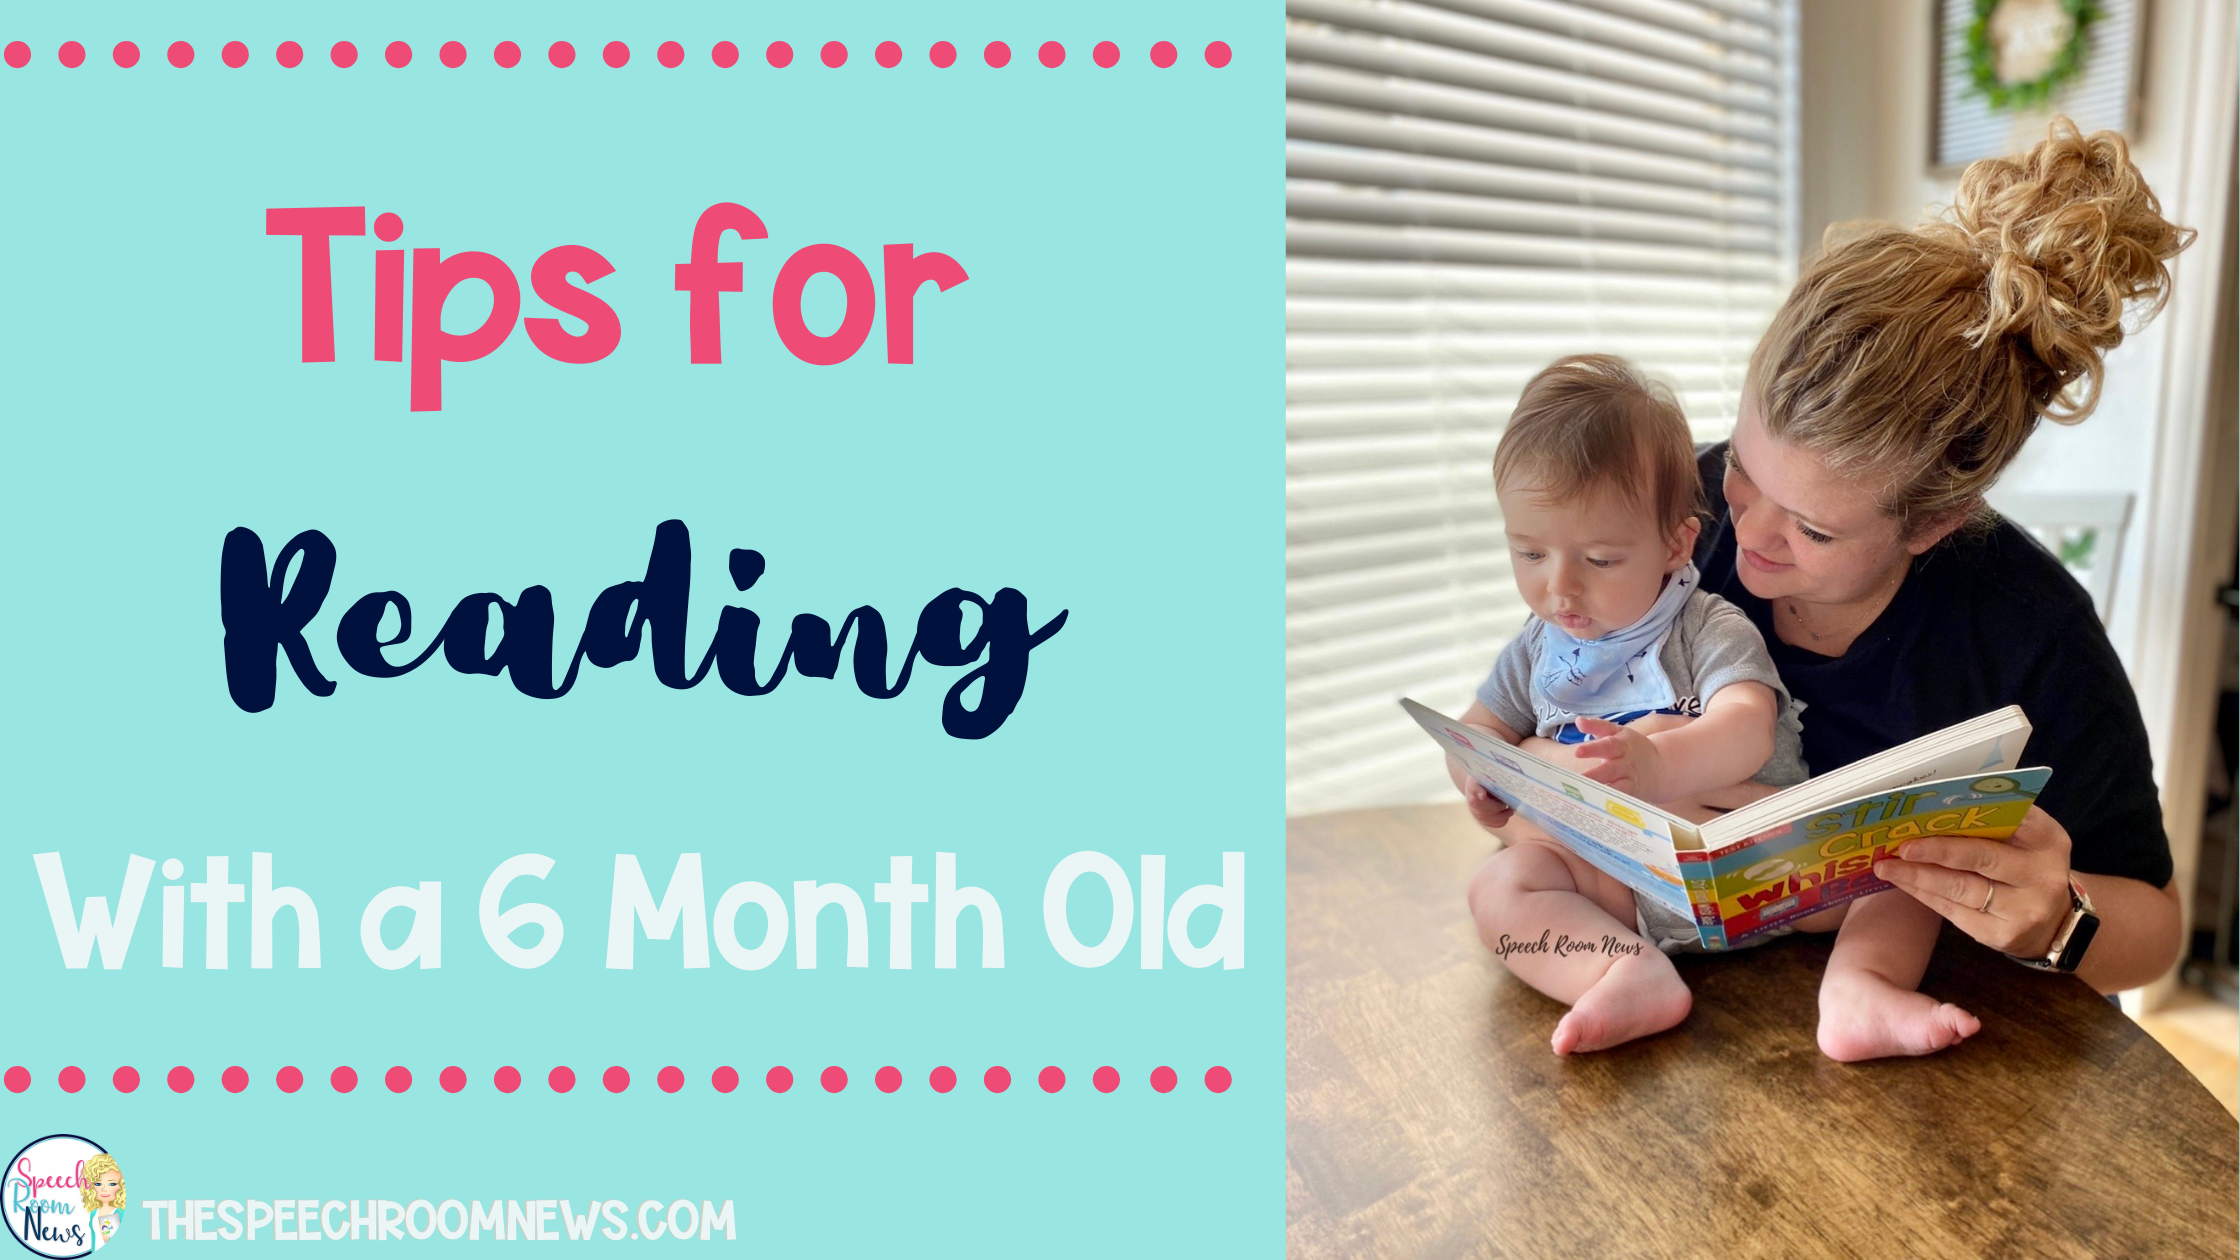 Photo of Tips for reading with a 6 month old child